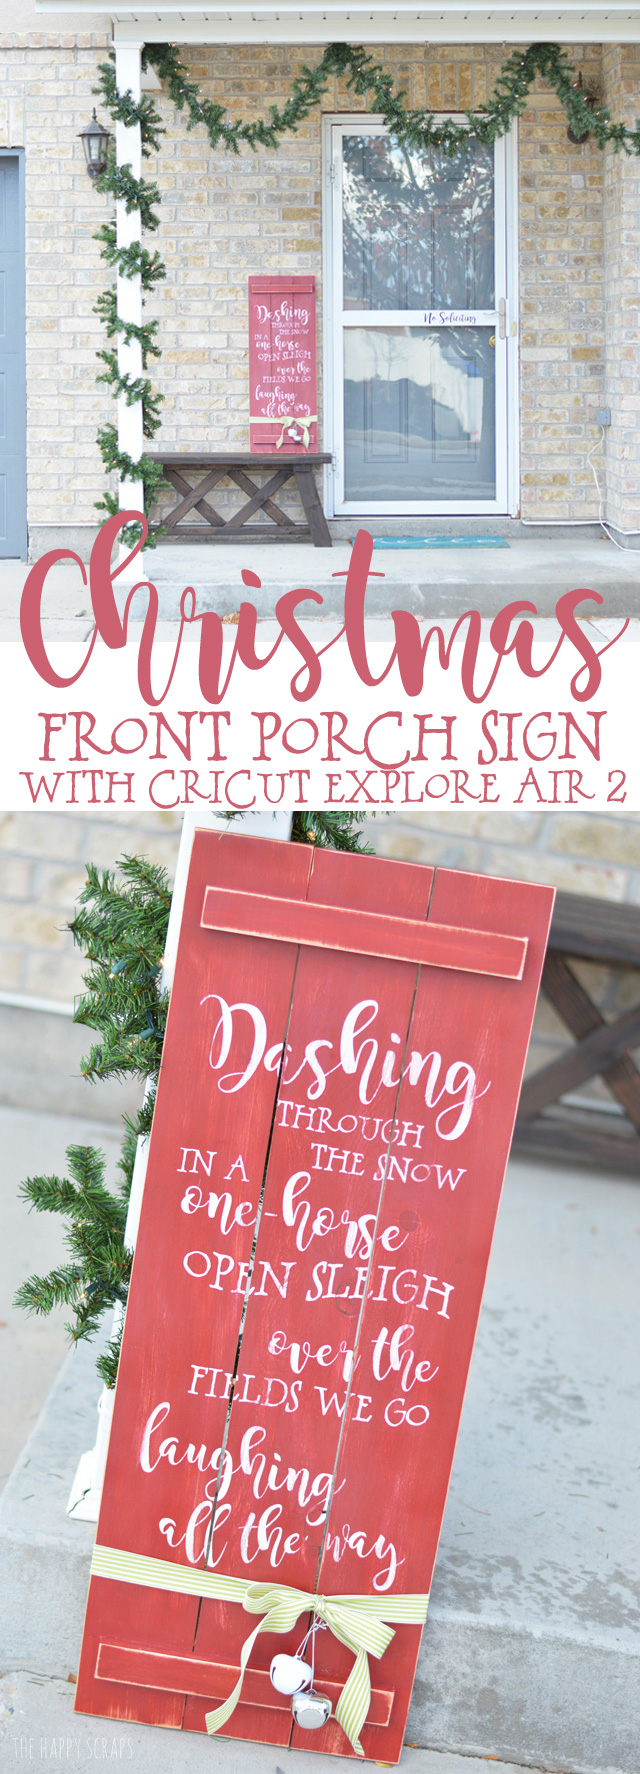 Christmas Front Porch Sign With Cricut The Happy Scraps